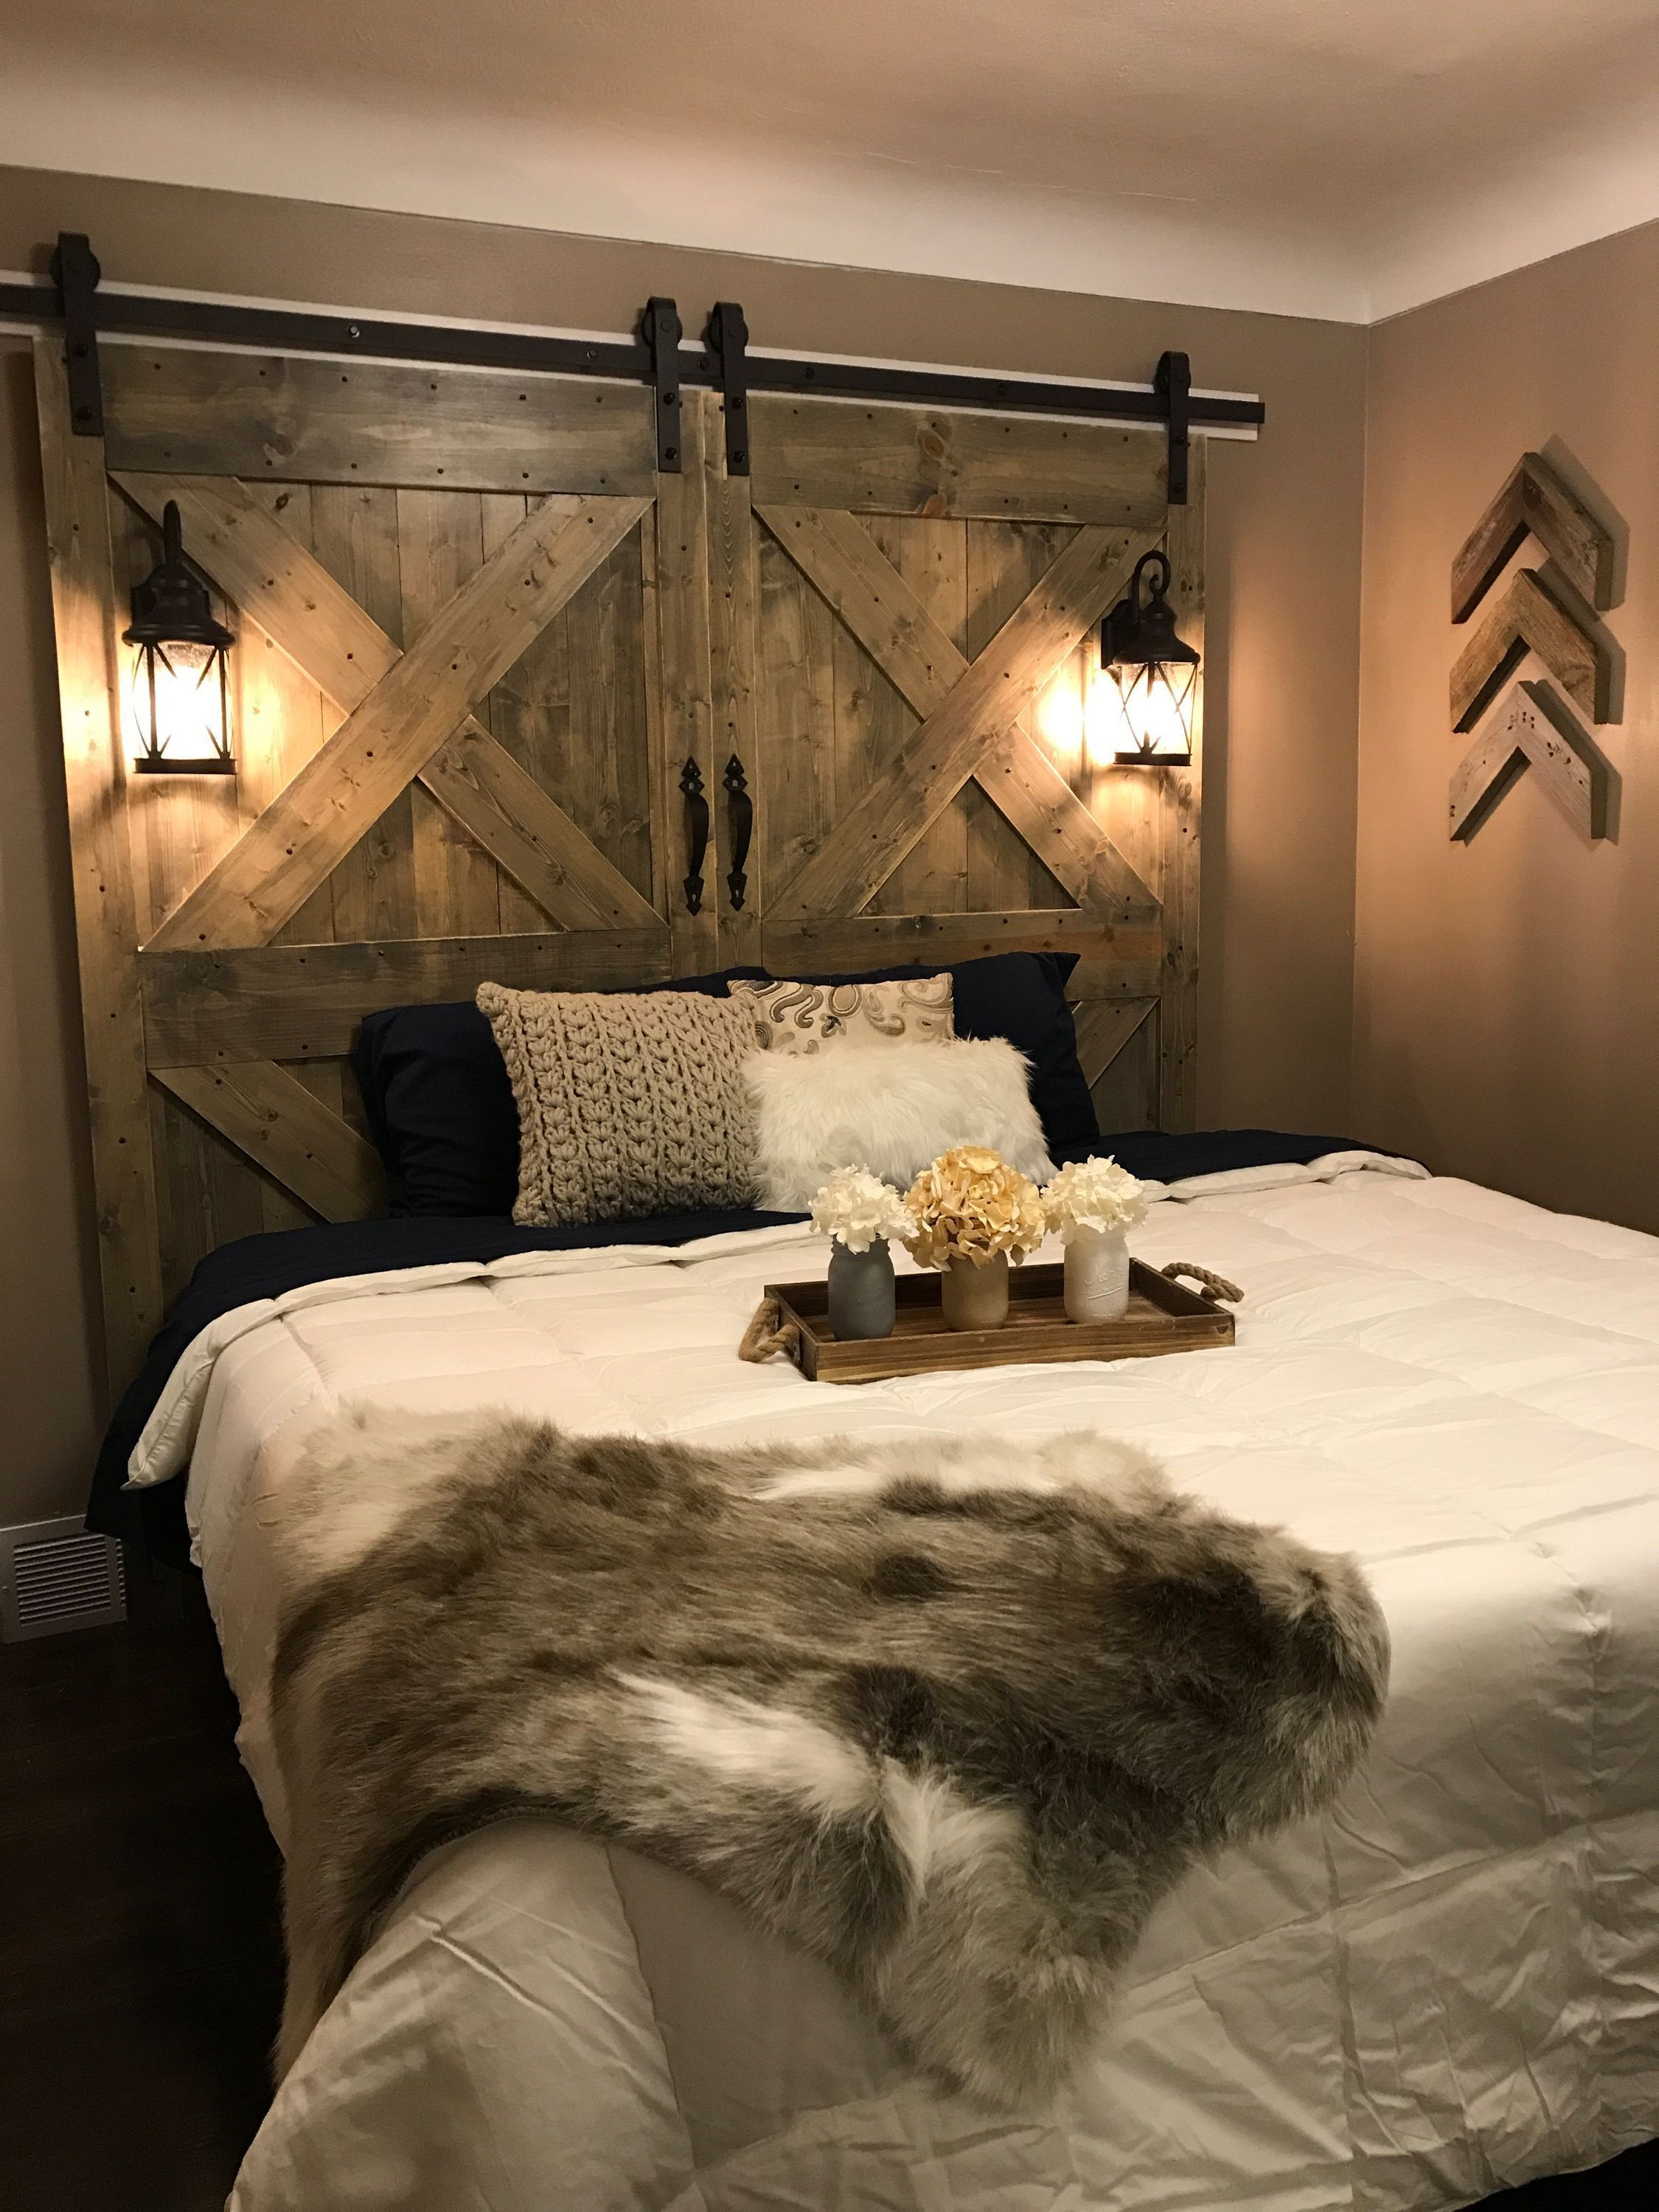 Farmhouse Bedroom Ideas: √ 19 Tips and Tricks Cool Bedroom Makeover images